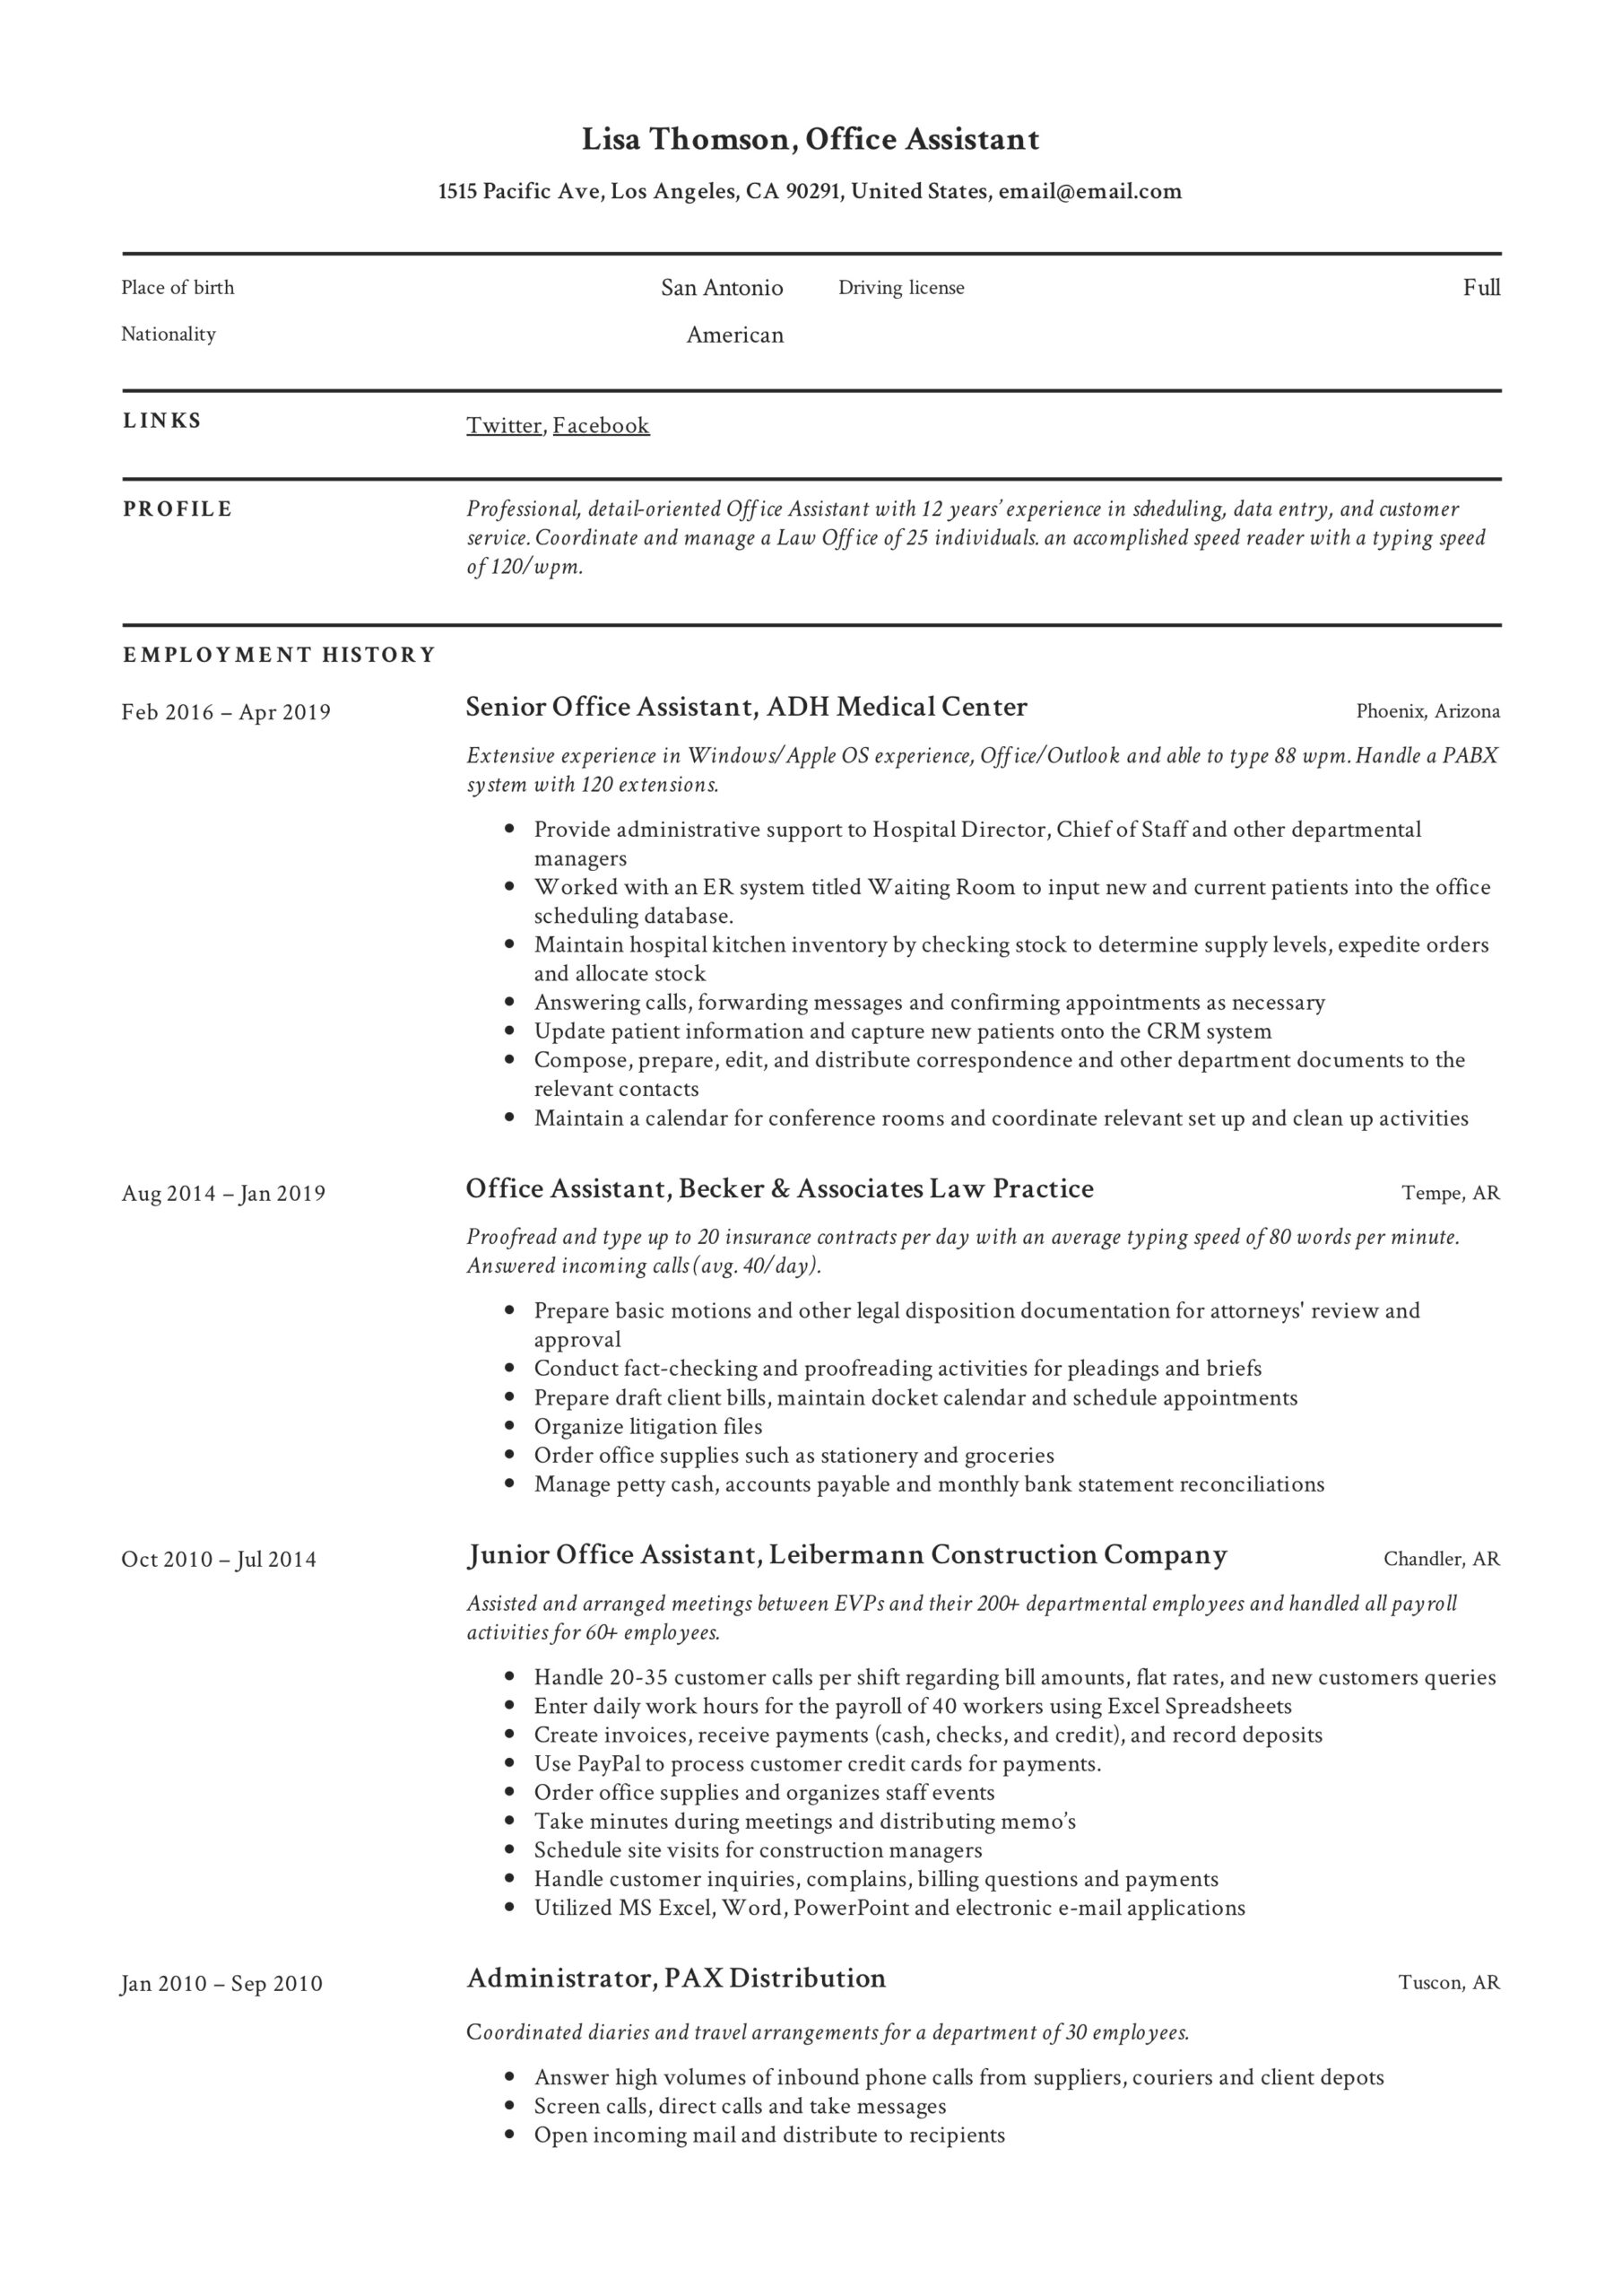 office assistant resume writing guide templates summary lisa thomson self evaluation Resume Office Assistant Resume Summary